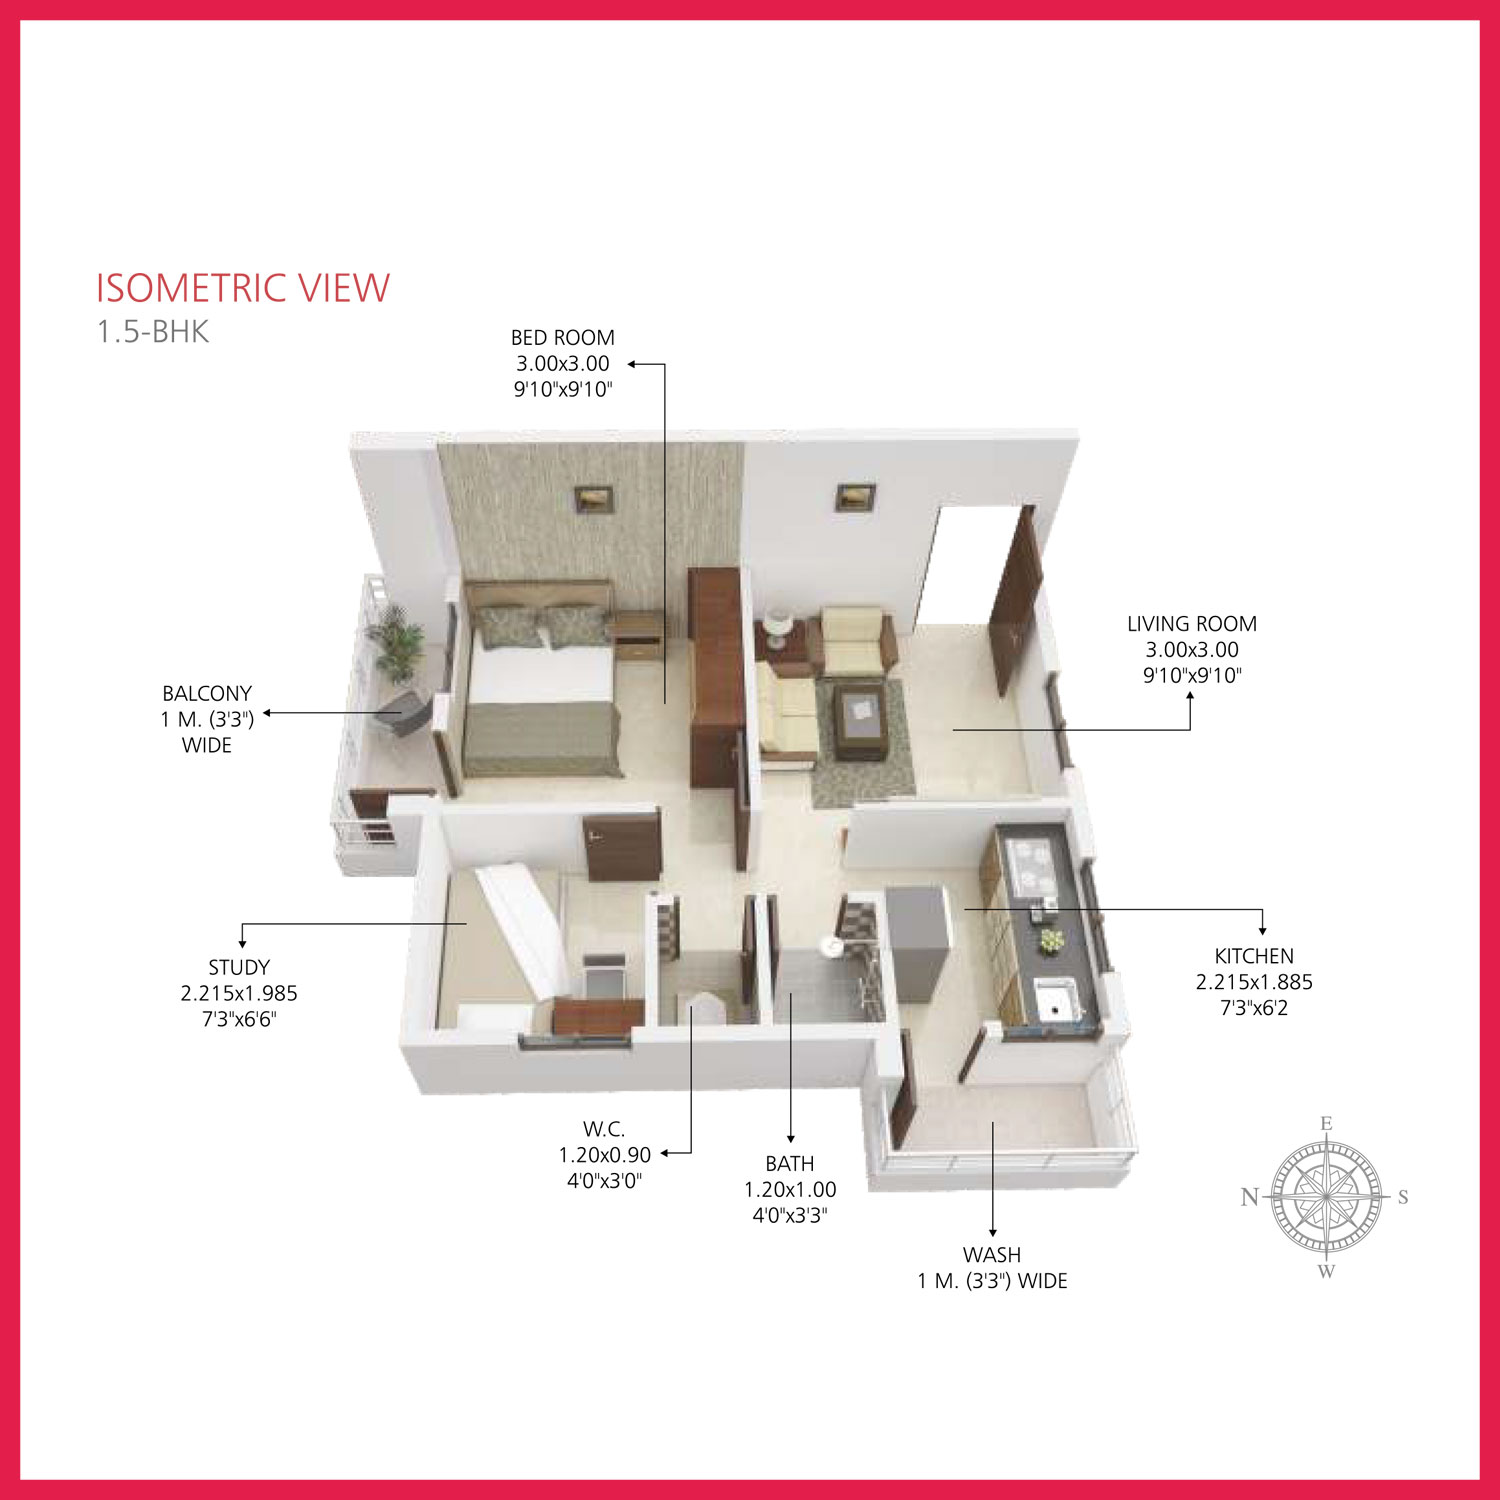 ruby-15bhk-isometric-view-1